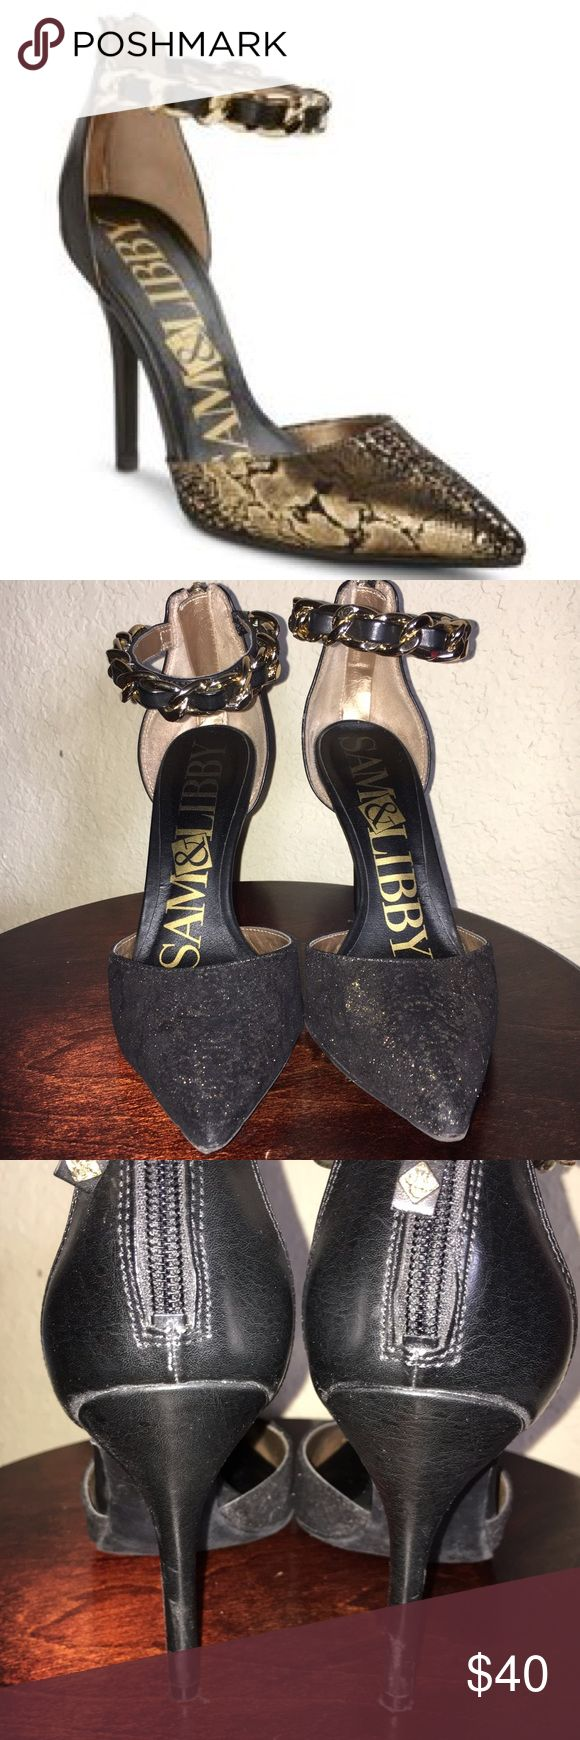 Sam and Libby Gold Snakeskin Ankle Chain Pumps Sam & Libby Gold Snakeskin Ankle Chain Pumps. Gently worn with the backs of heels showing the most wear (see third photo). Plenty of life left in them! Super cute, I just don't wear heels much anymore and I'm moving so I want to reduce clutter 😊 Size 6. Sam & Libby Shoes Heels